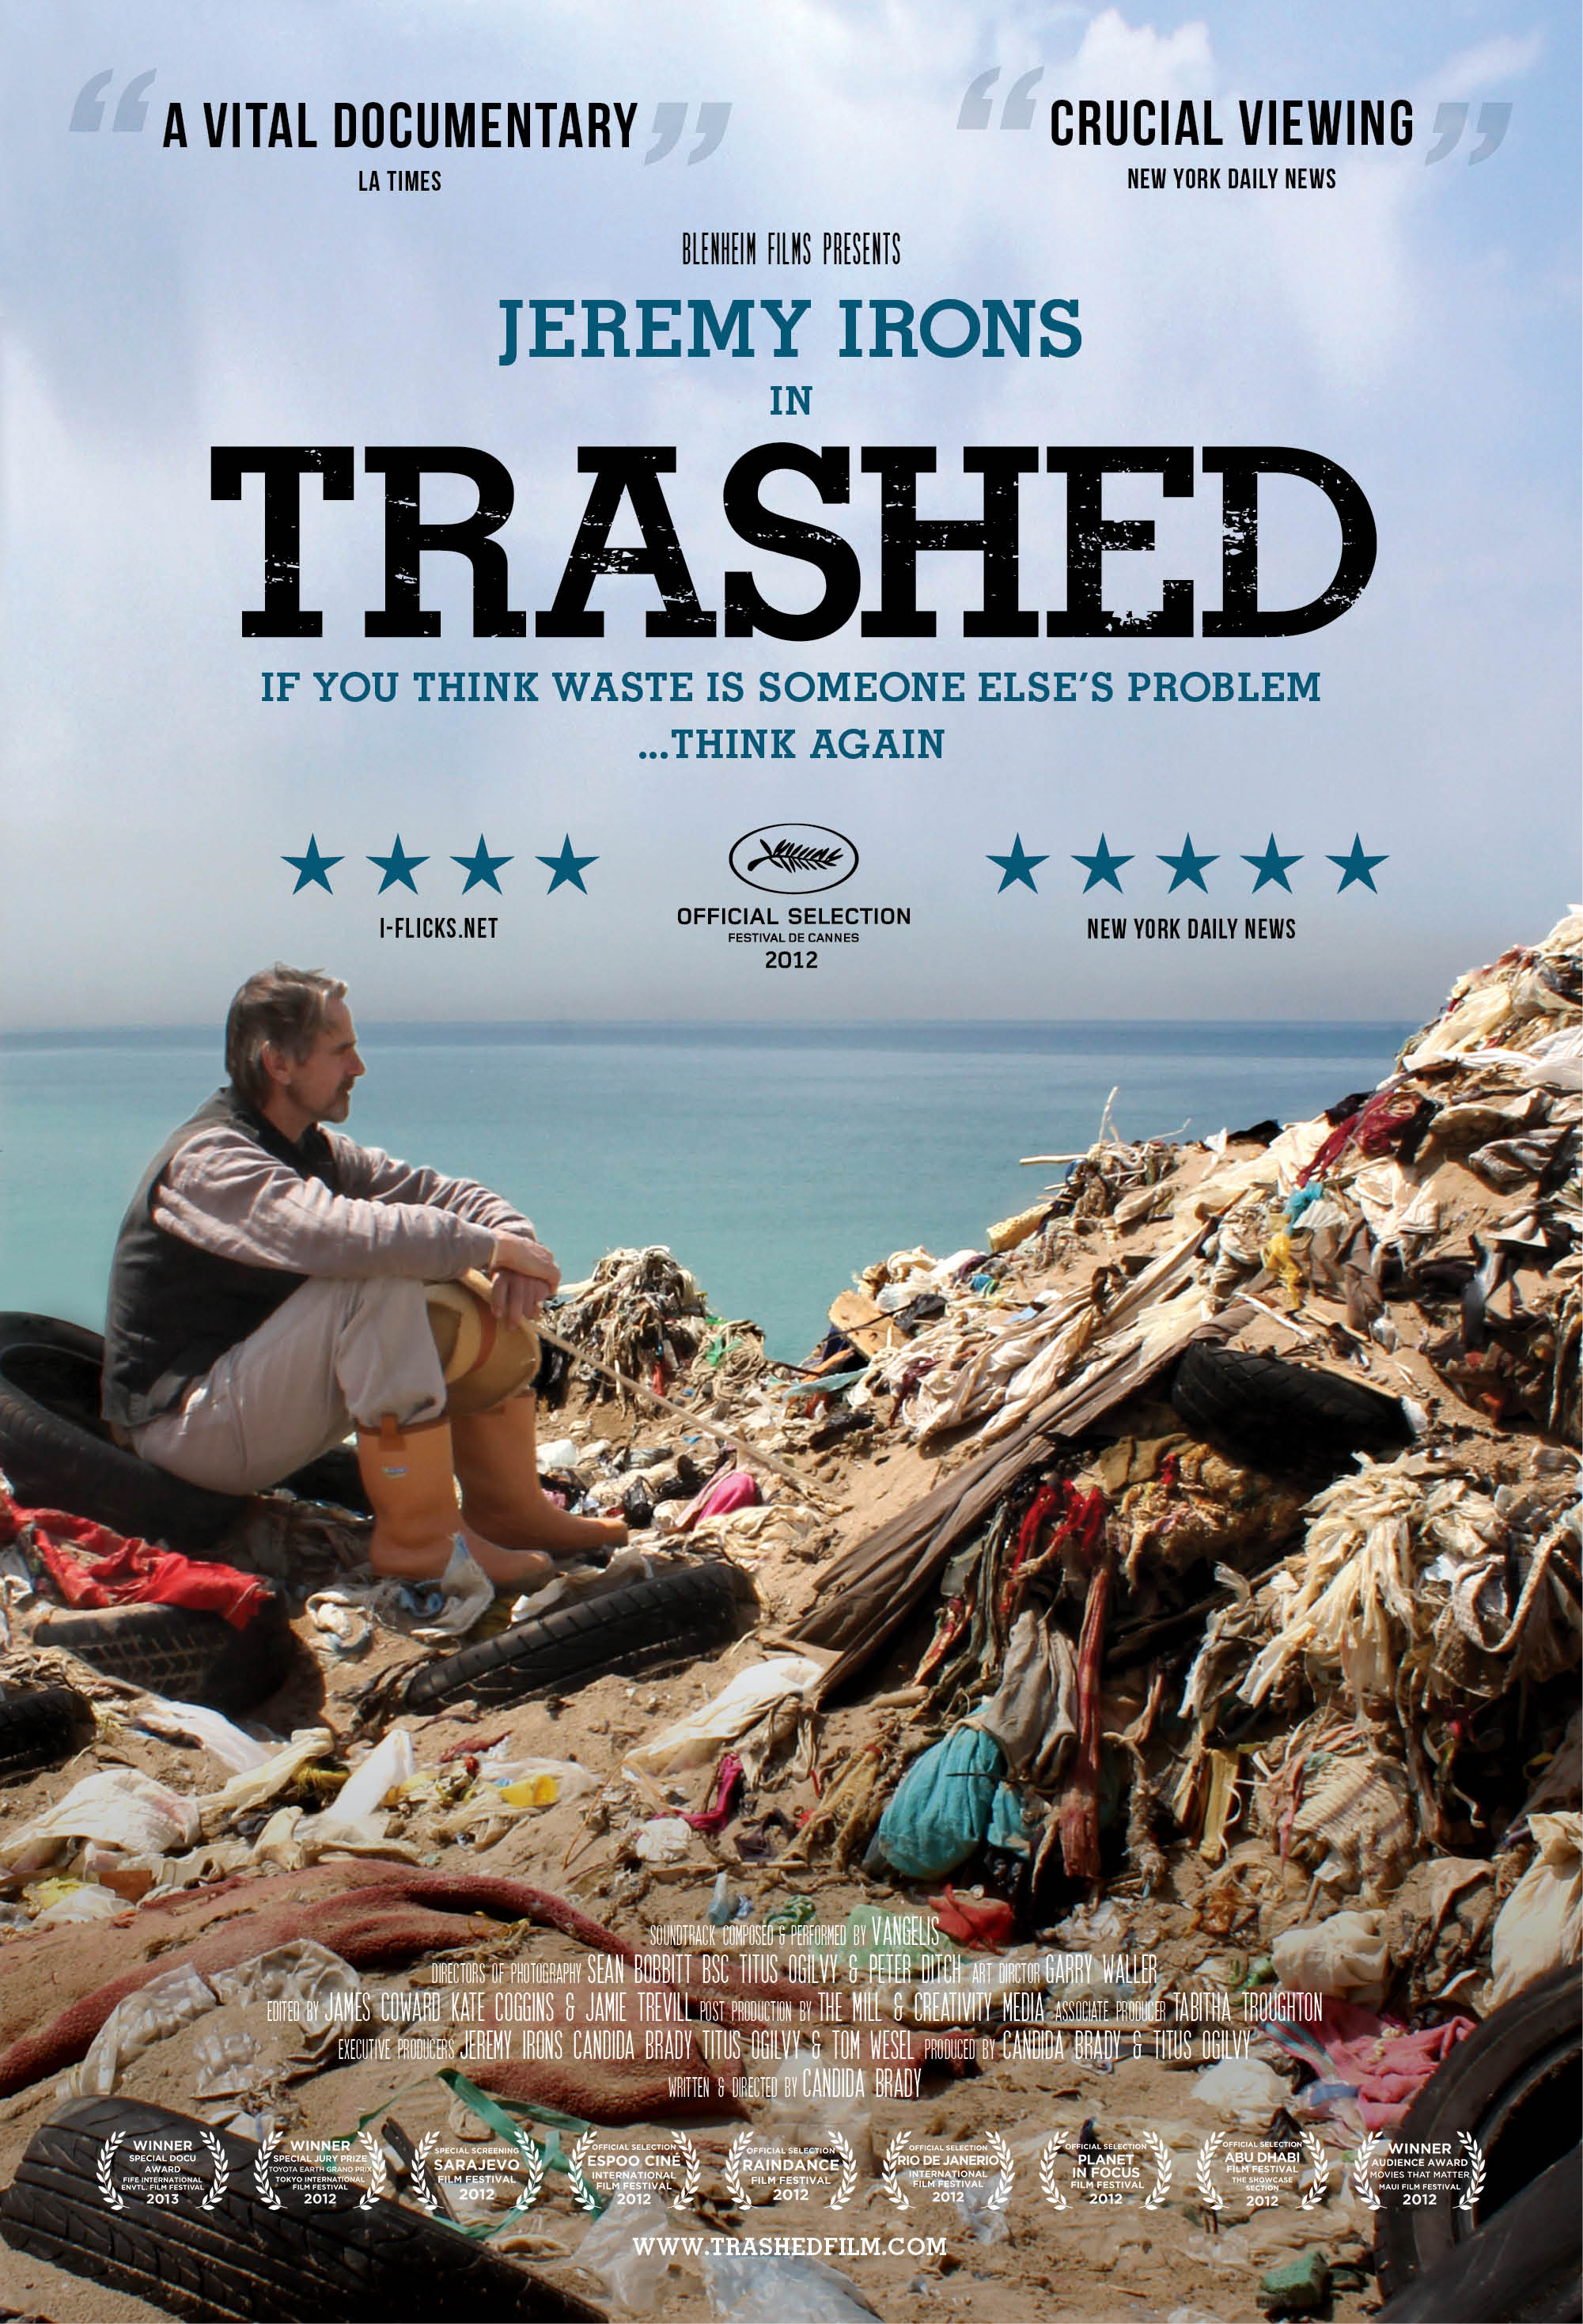 Trashed_Poster_OFFICIAL_US_LORES_27X40 (1) copy.jpg